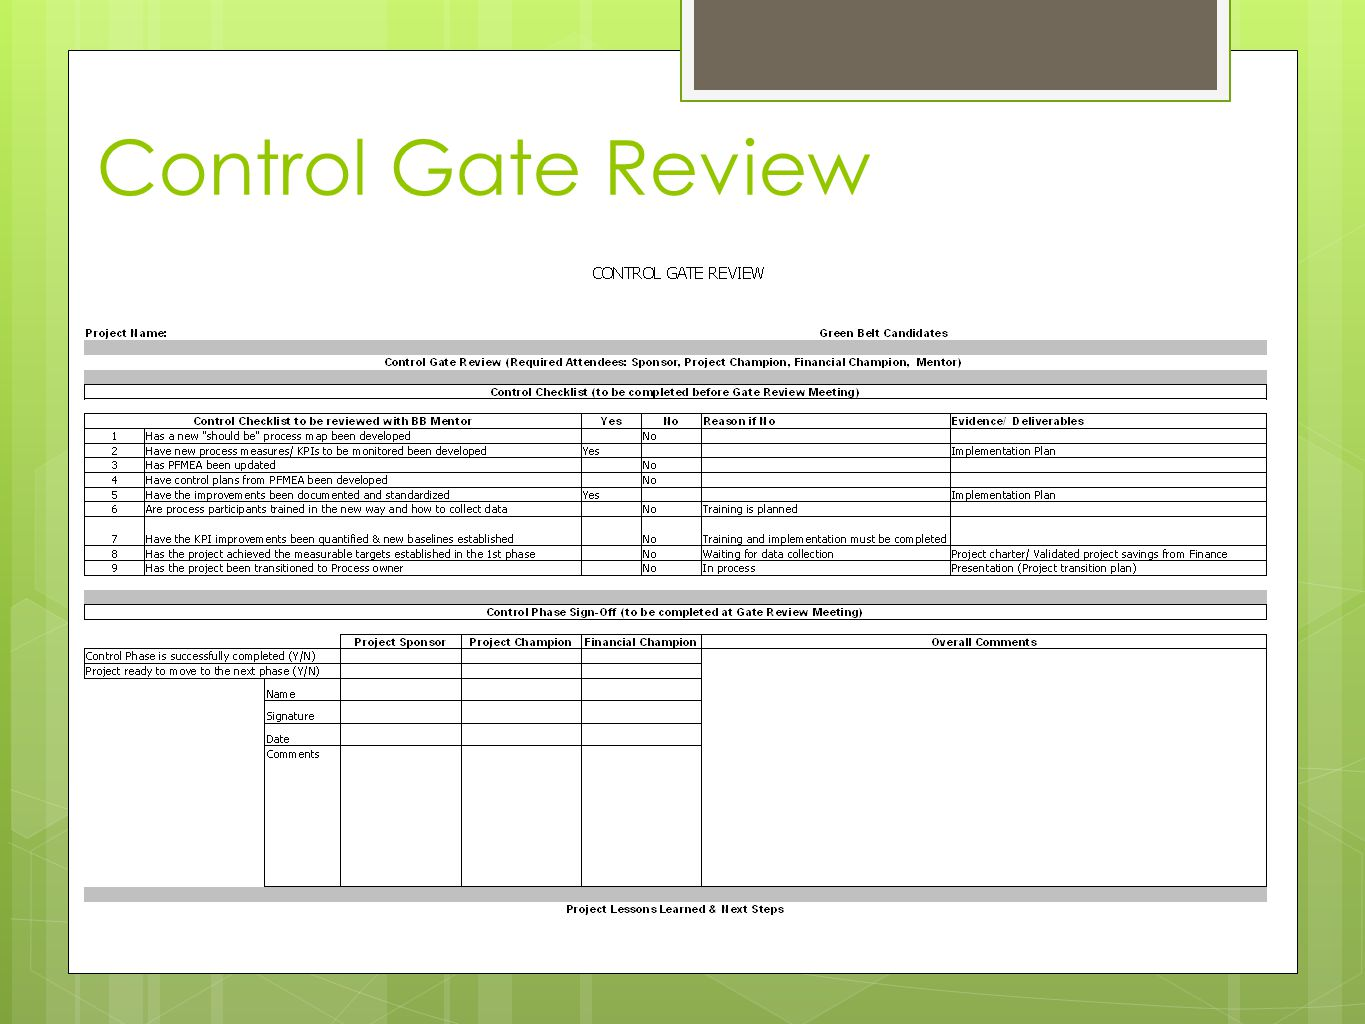 Control Gate Review